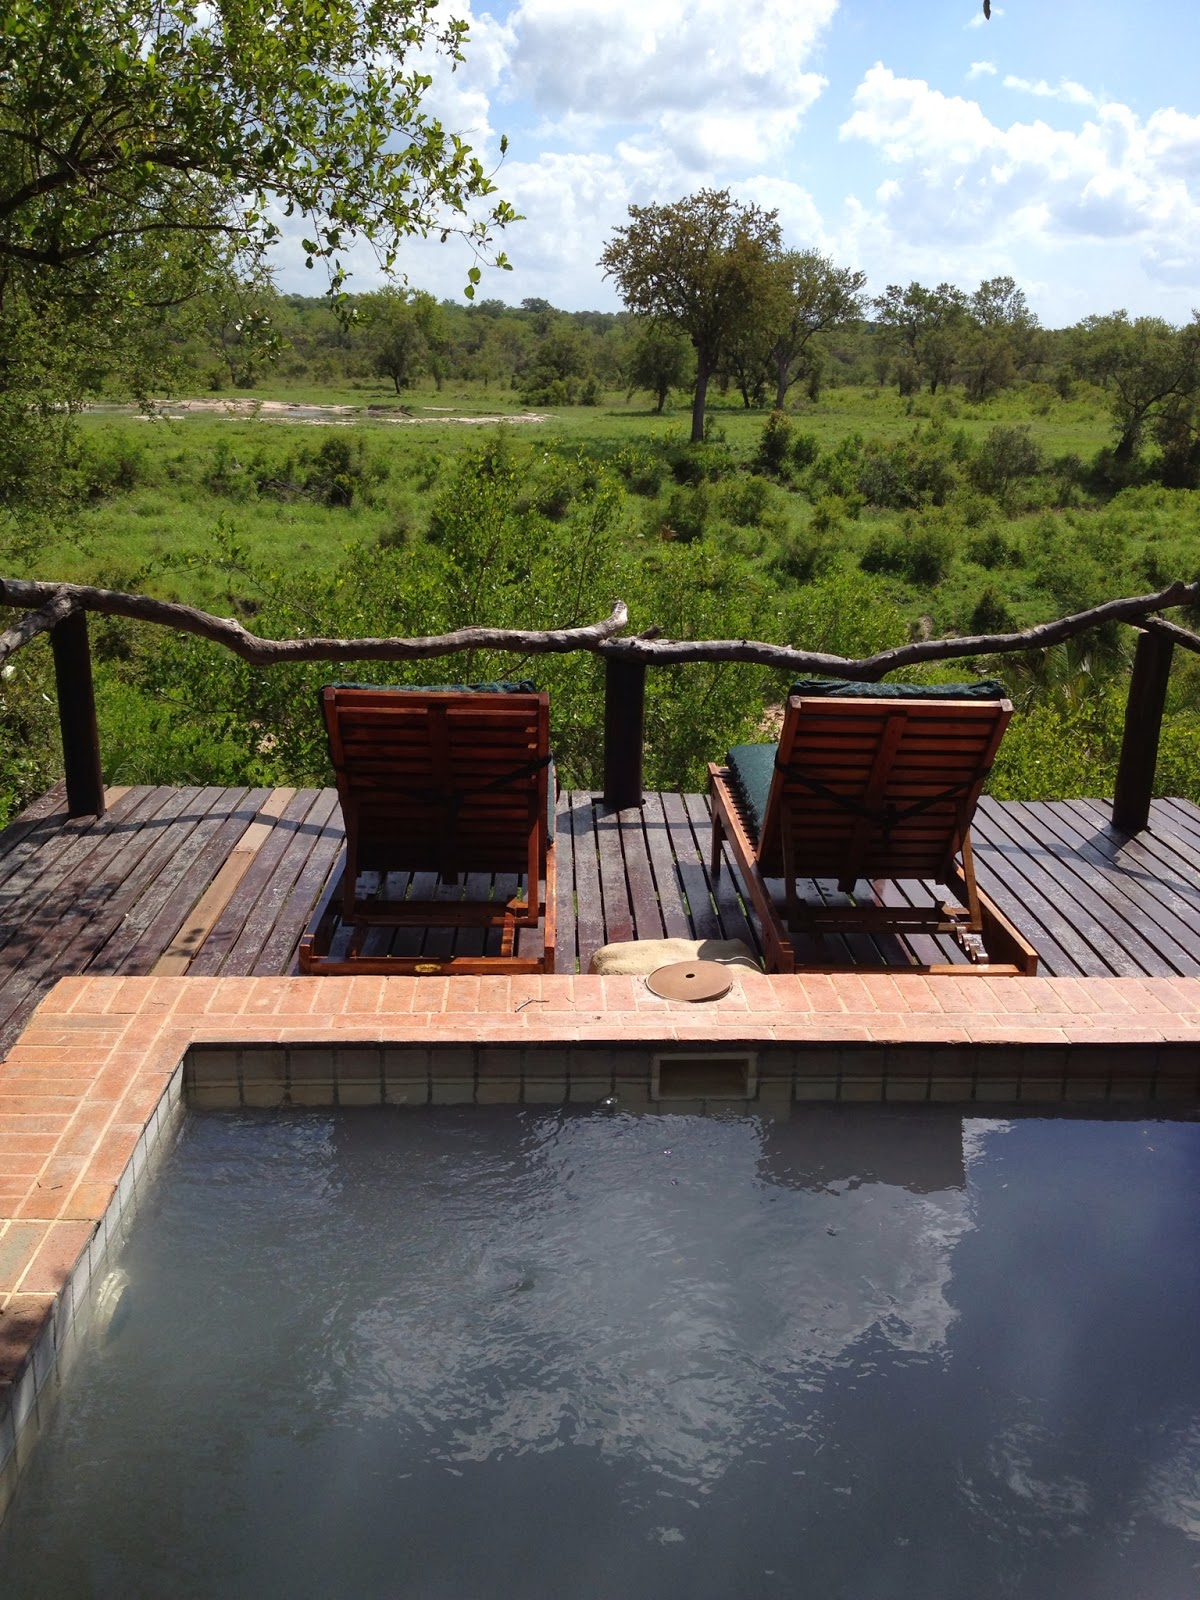 Sabi Sands - Our view of the watering hole from our plunge pool